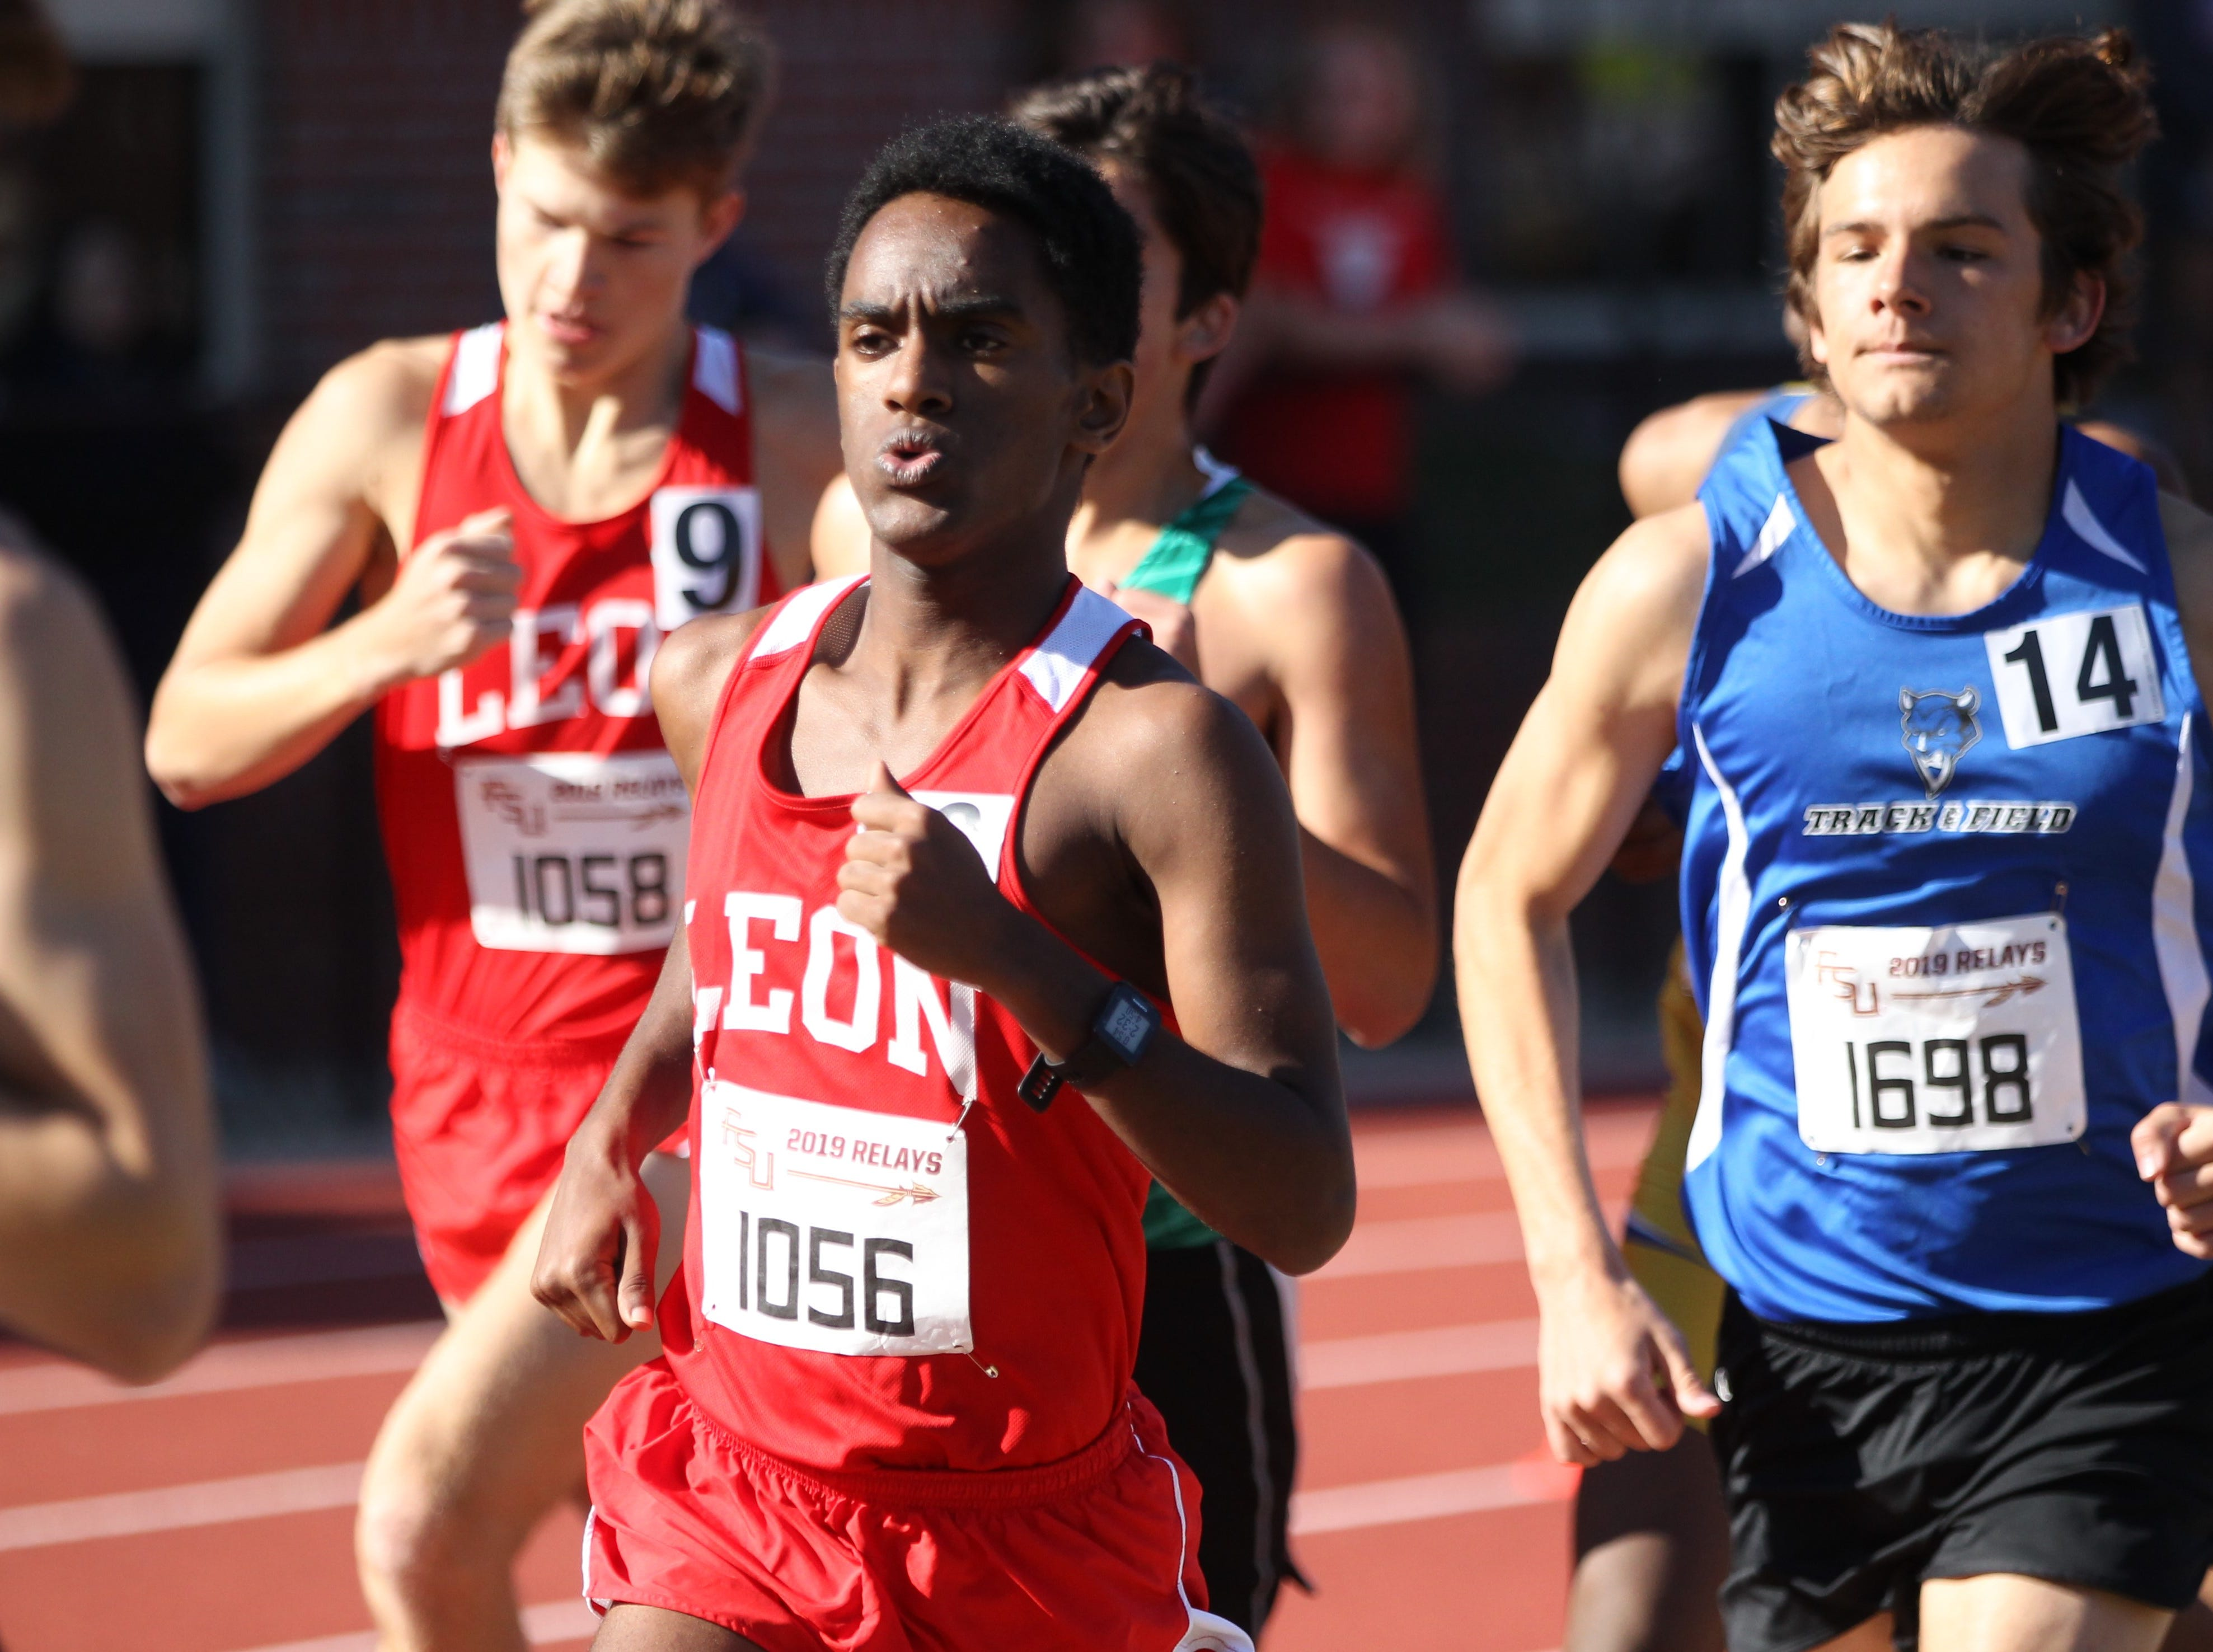 Leon's Joseph Ashebo runs the 1600 during the 40th annual FSU Relays at Mike Long Track on Saturday, March 23, 2019.